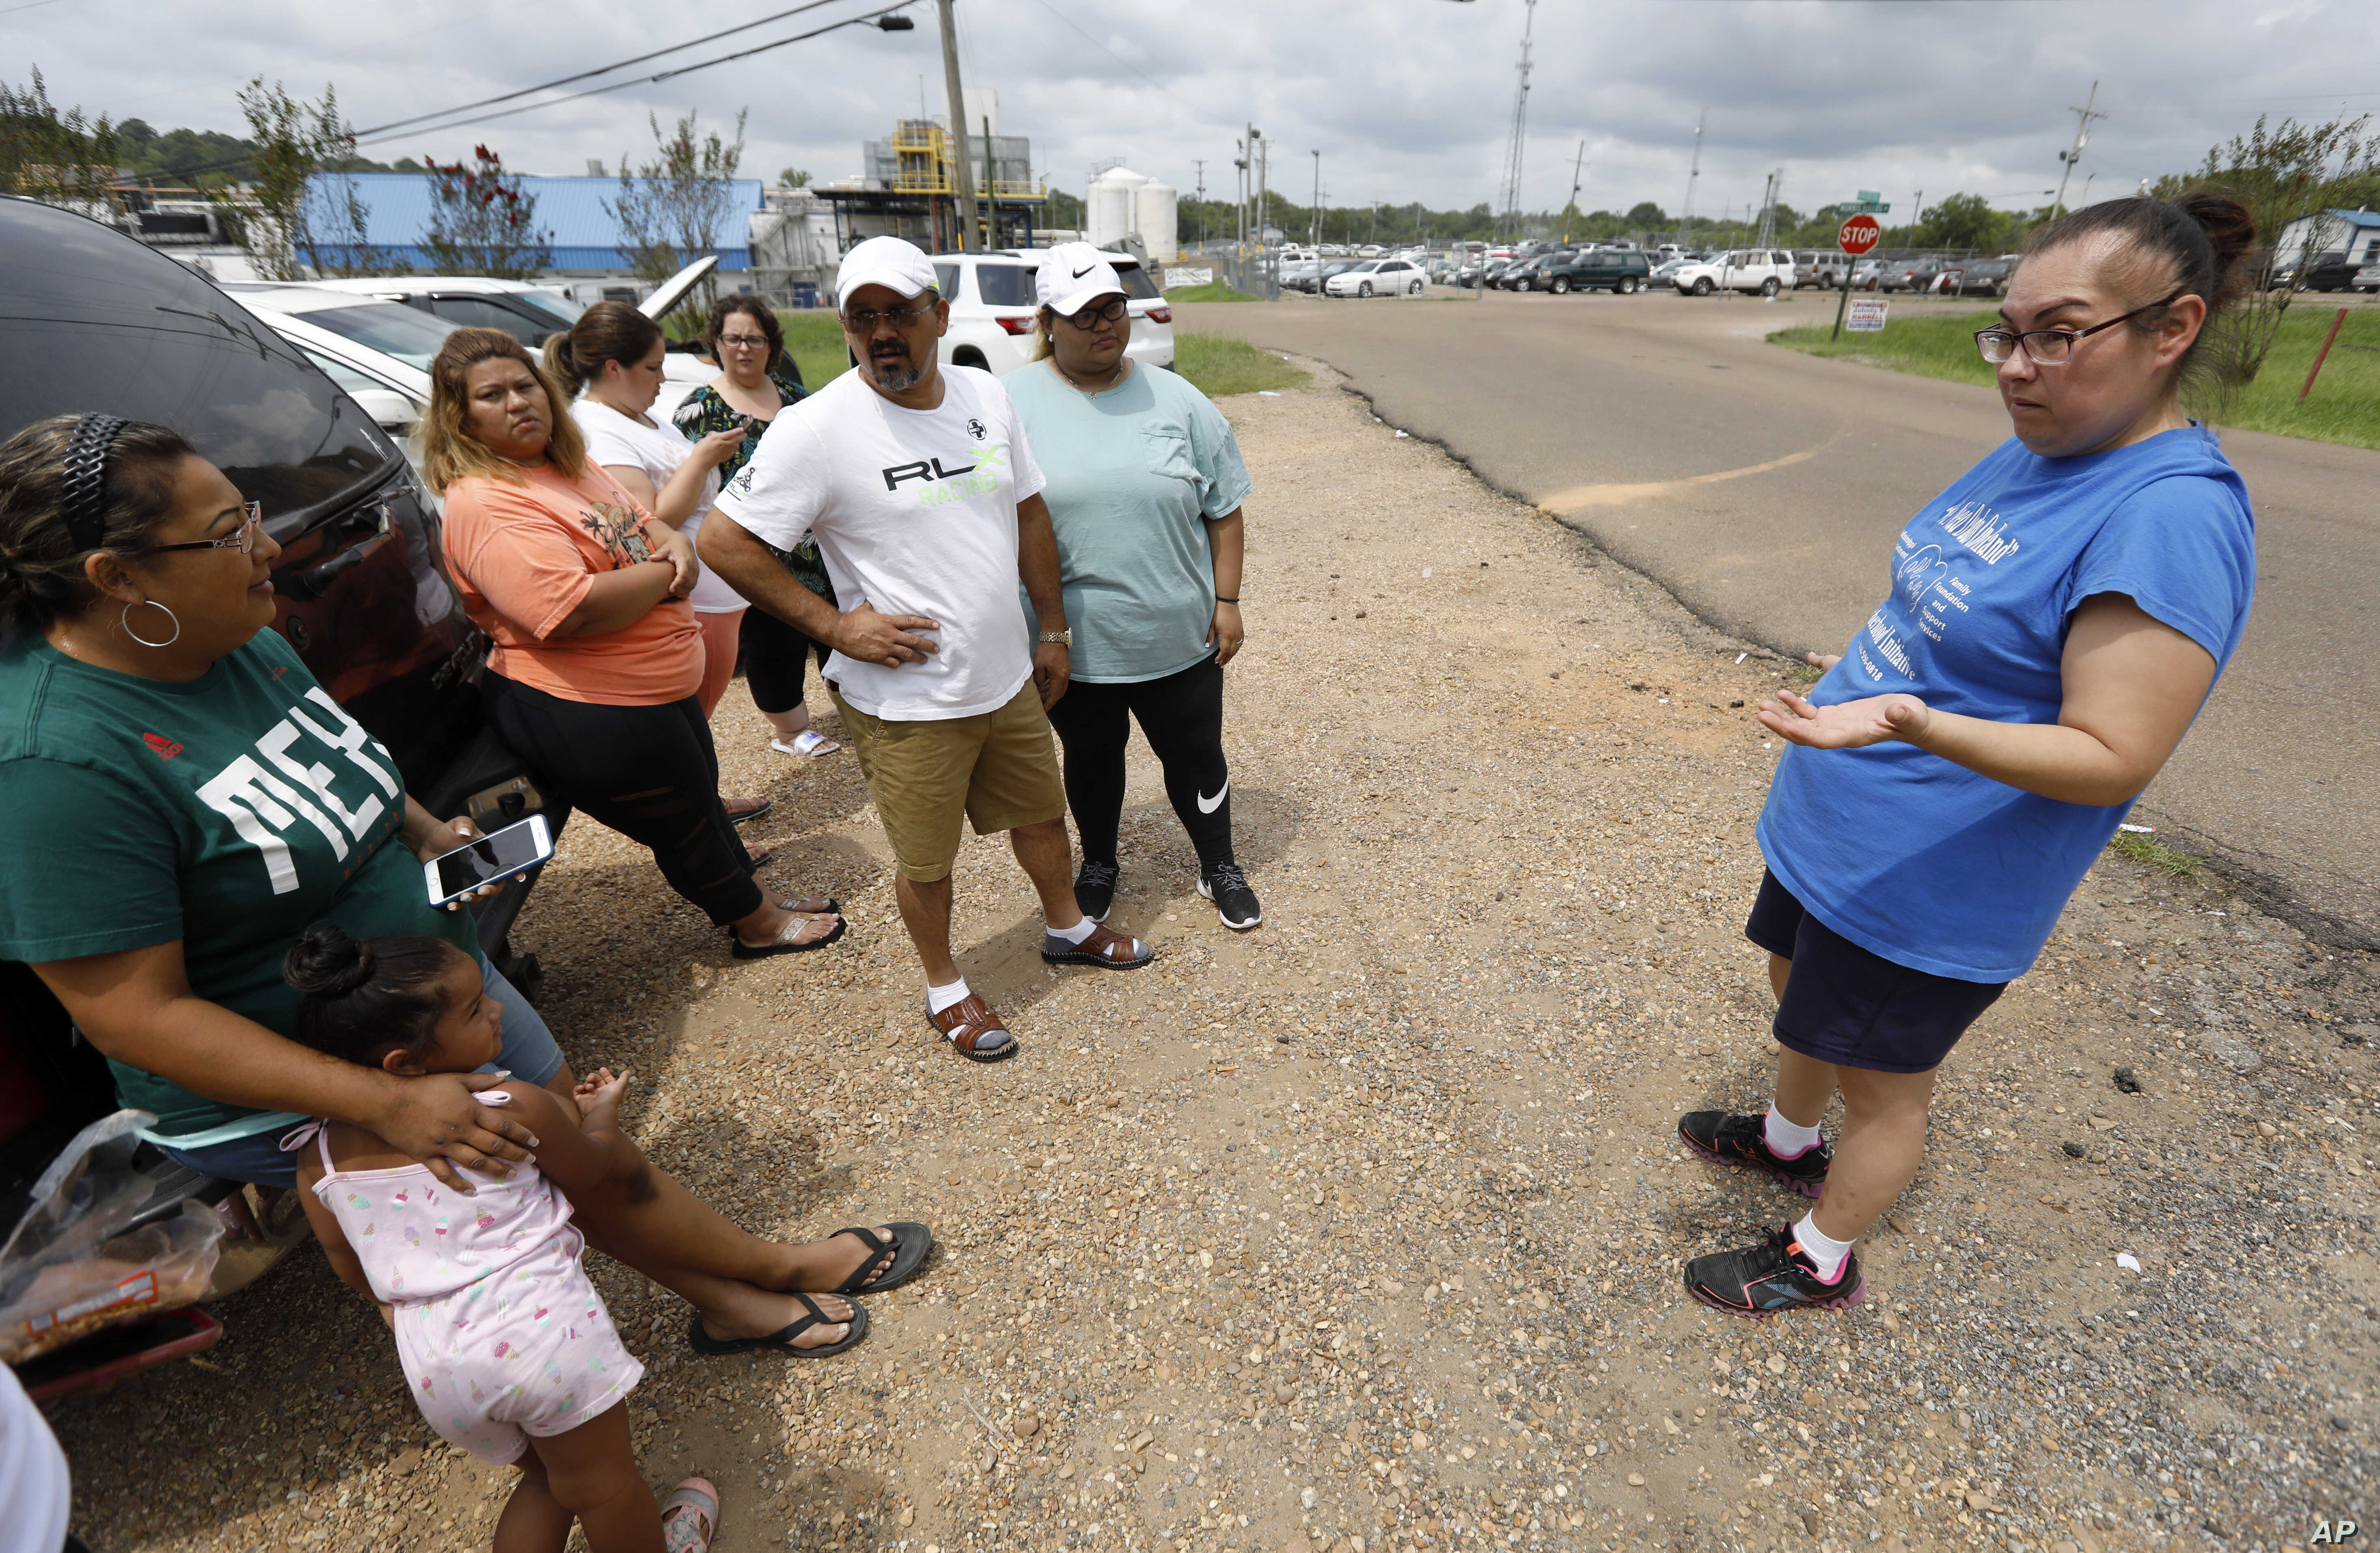 Gabriela Rosales, right, confers with friends outside the employee entrance to the Koch Foods Inc., plant in Morton, Miss., Aug. 8, 2019, that was raided Wednesday by U.S. immigration officials.